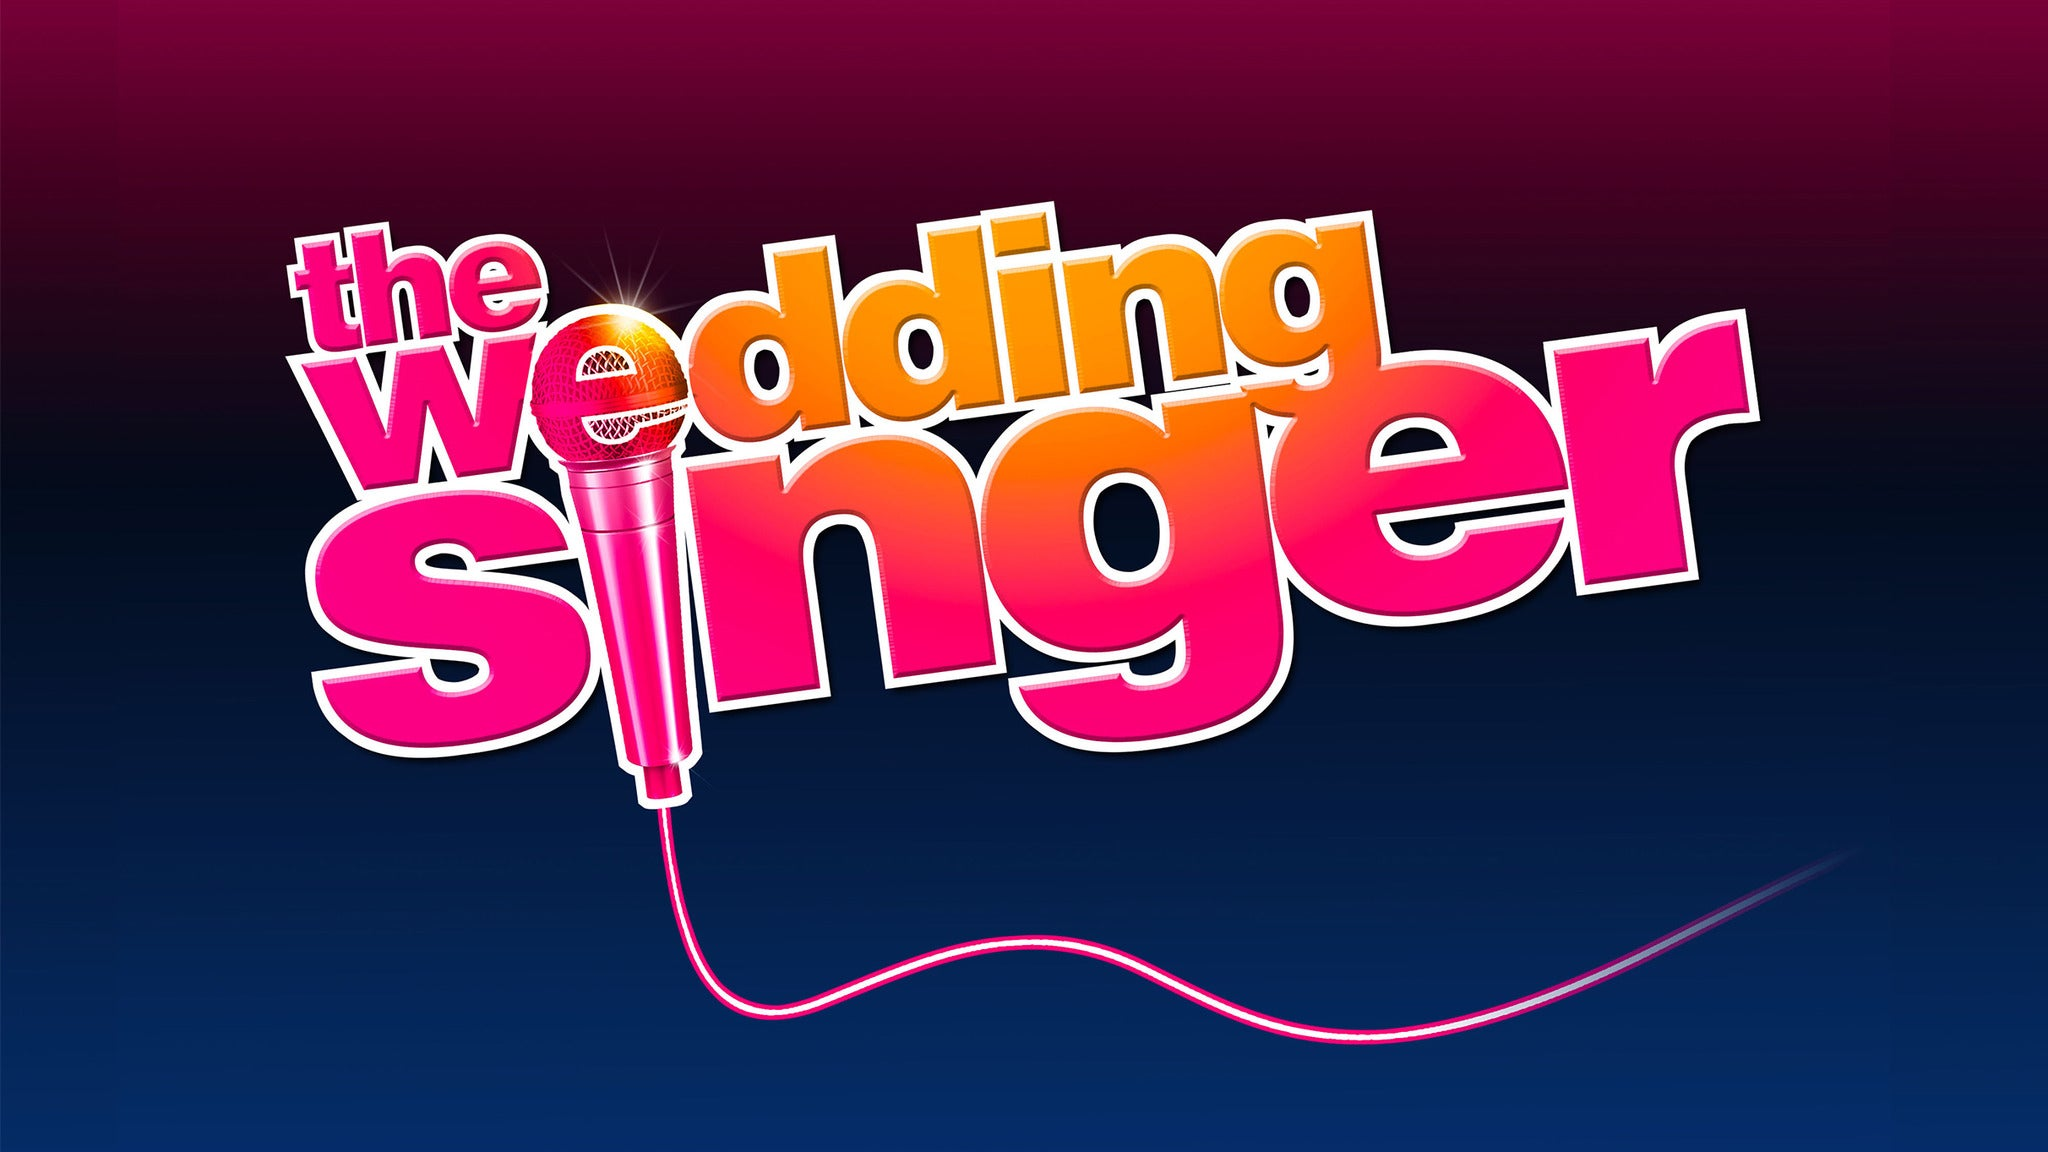 The Wedding Singer at Anderson Theater - Marietta, GA 30060